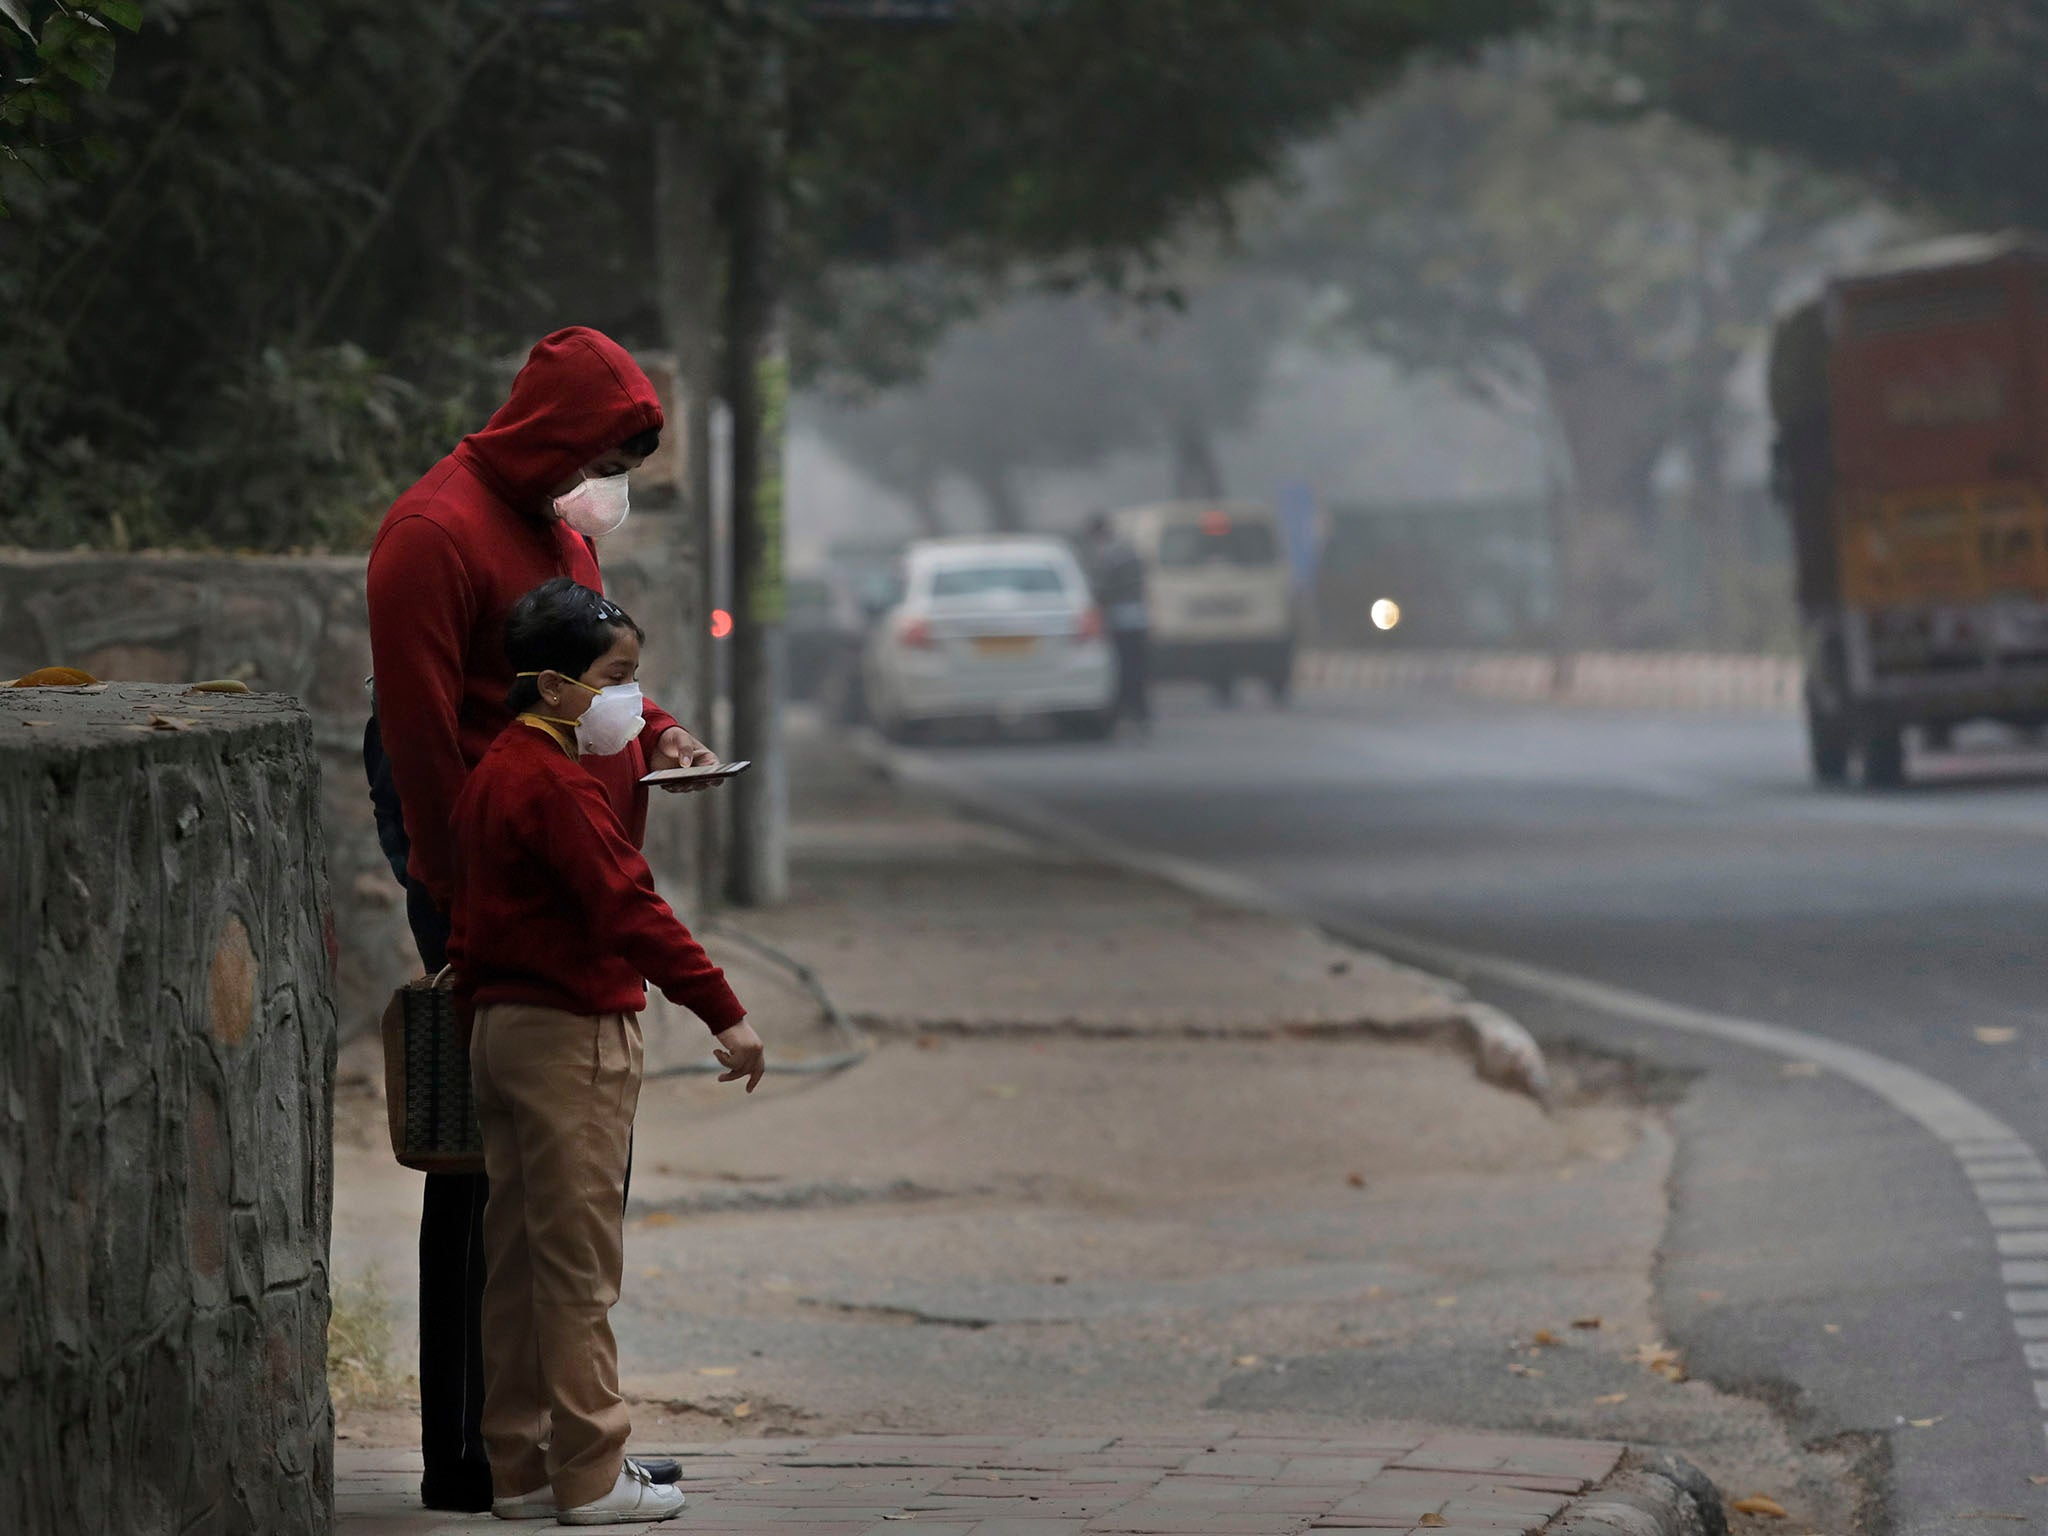 Delhi suffers second smog crisis in 12 months, as wake-up calls go unheeded